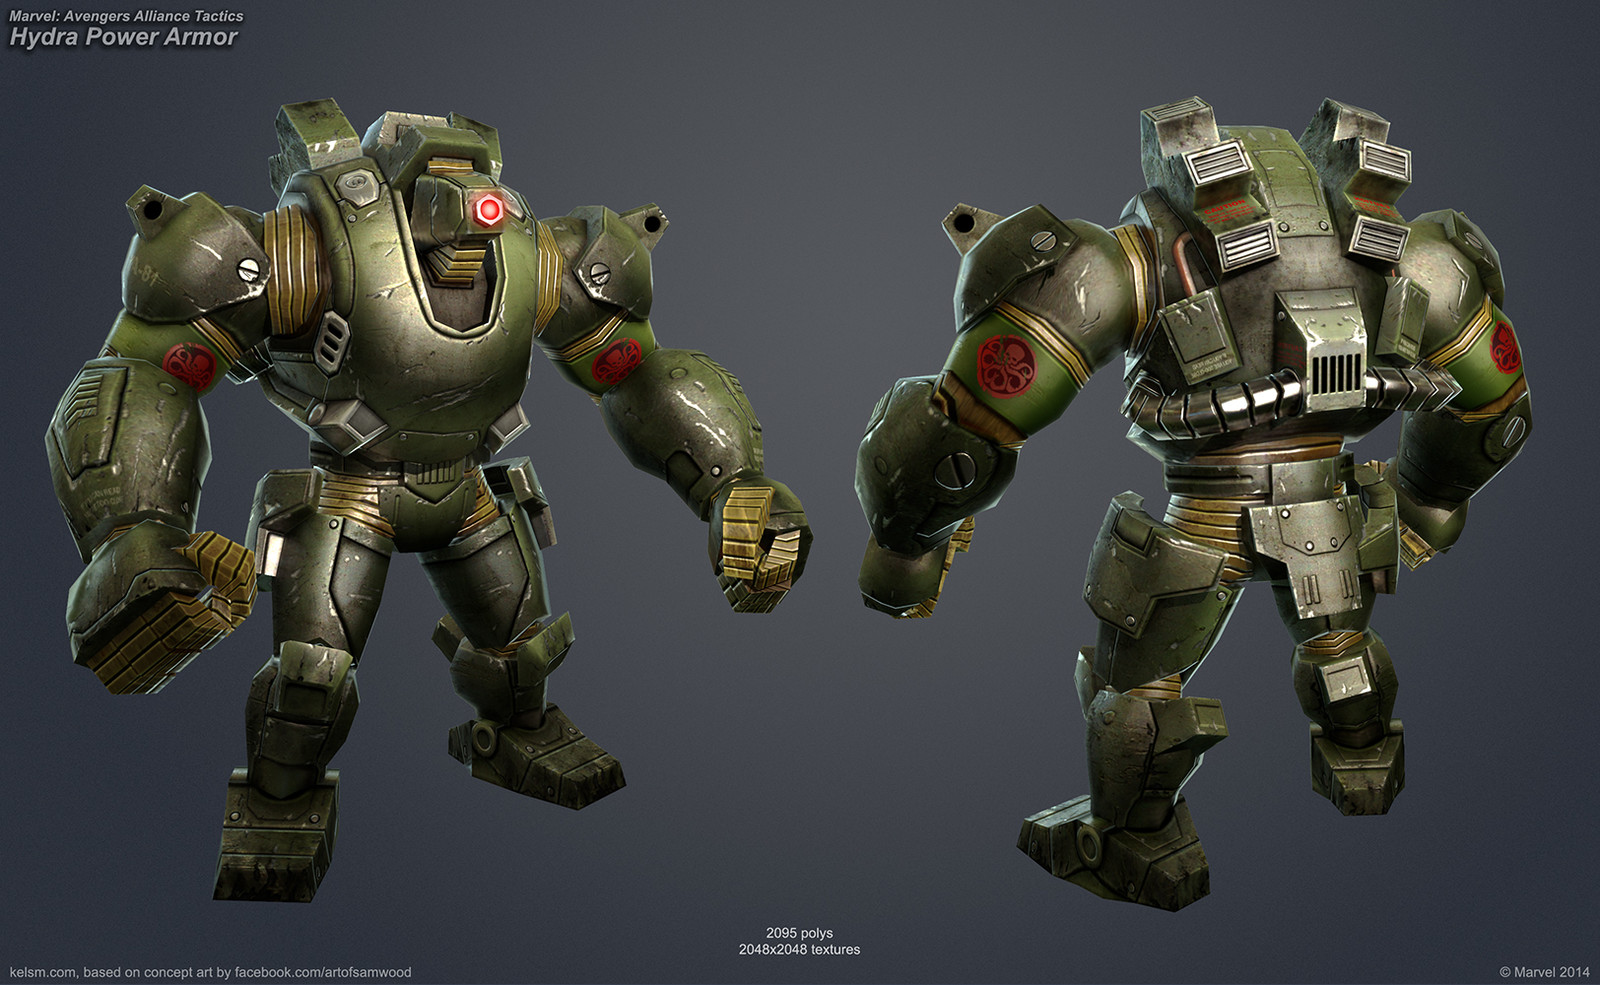 Hydra Power Armor